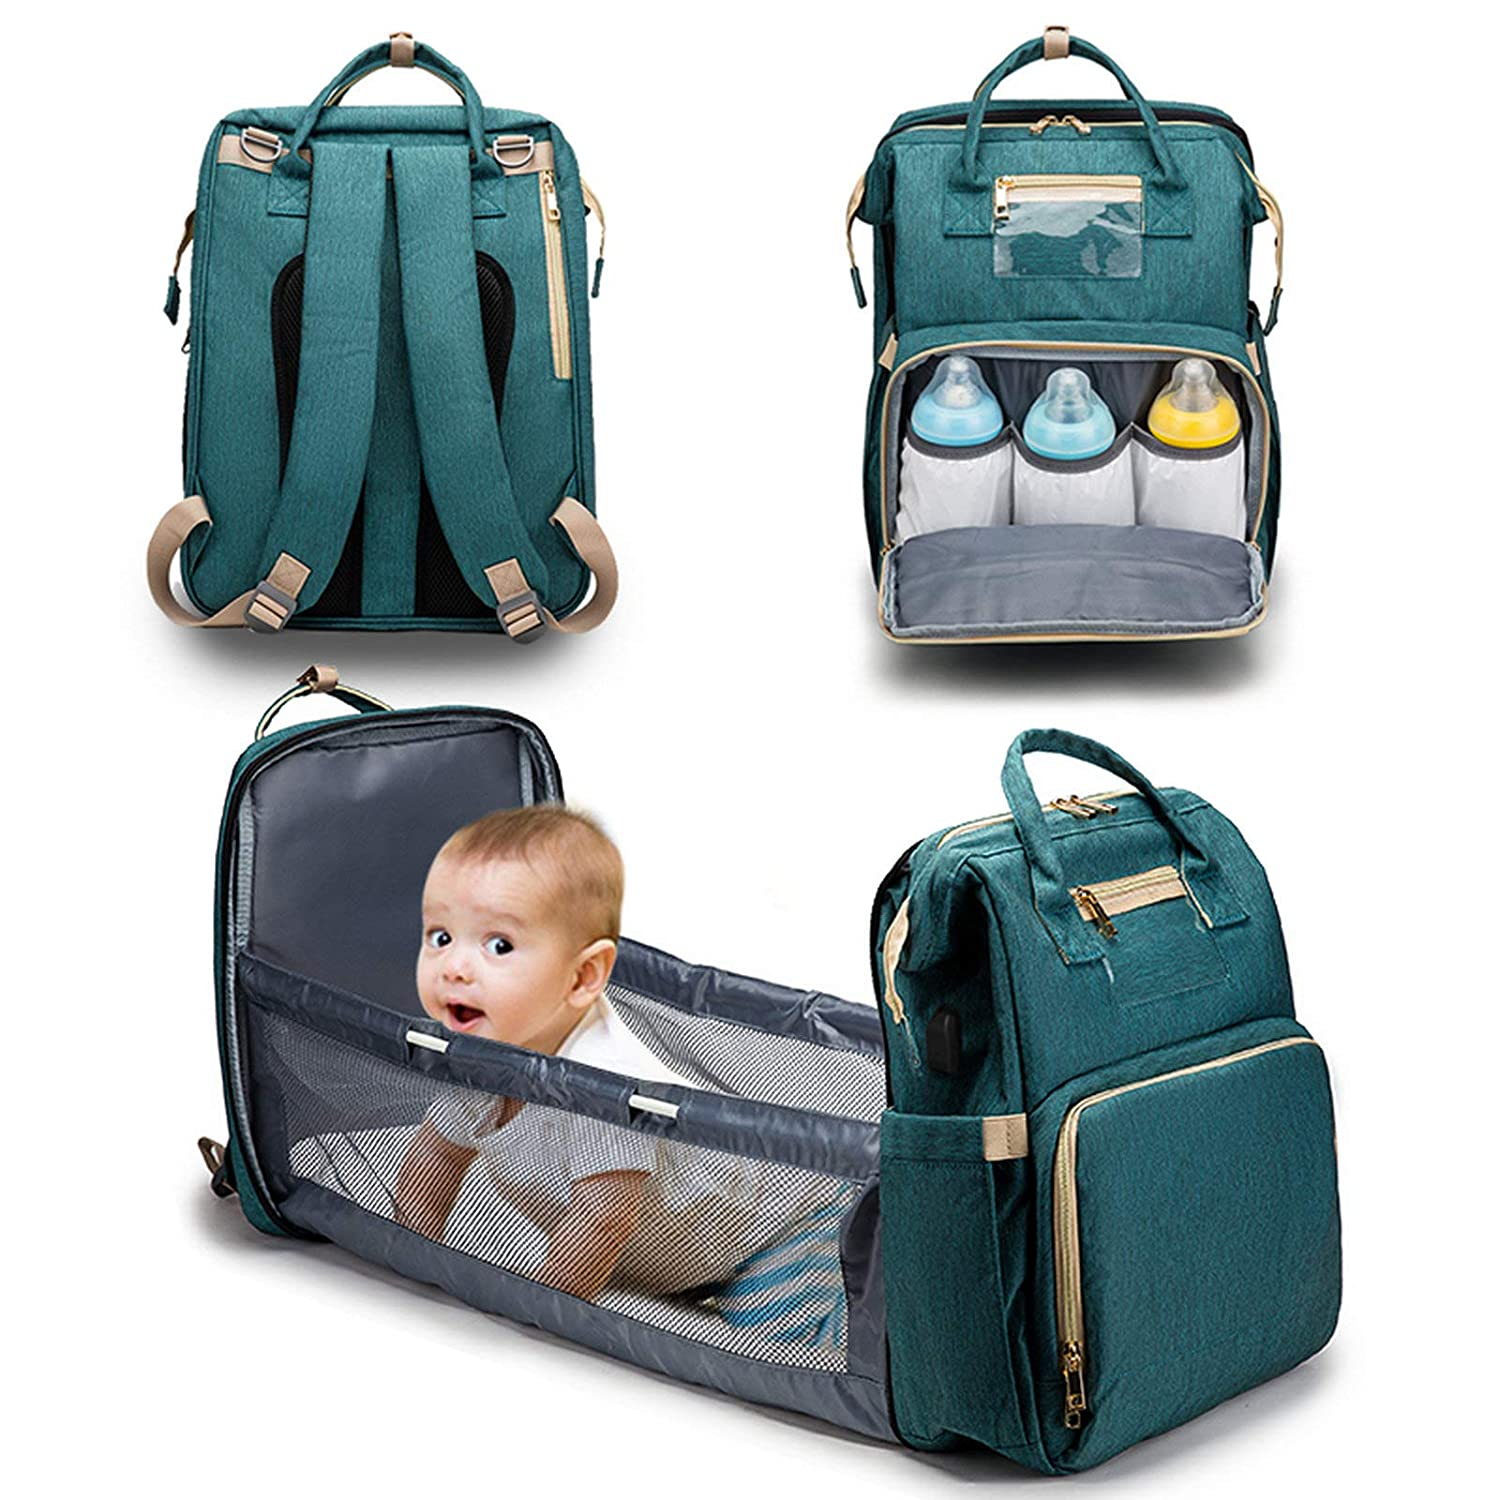 Innovation Diaper Bag&Bassinet, Portable Changing Station, Good Storage for Travel, Light and Practical, Insulated Bottle Sections, A Gift to a New Mom/Daddy